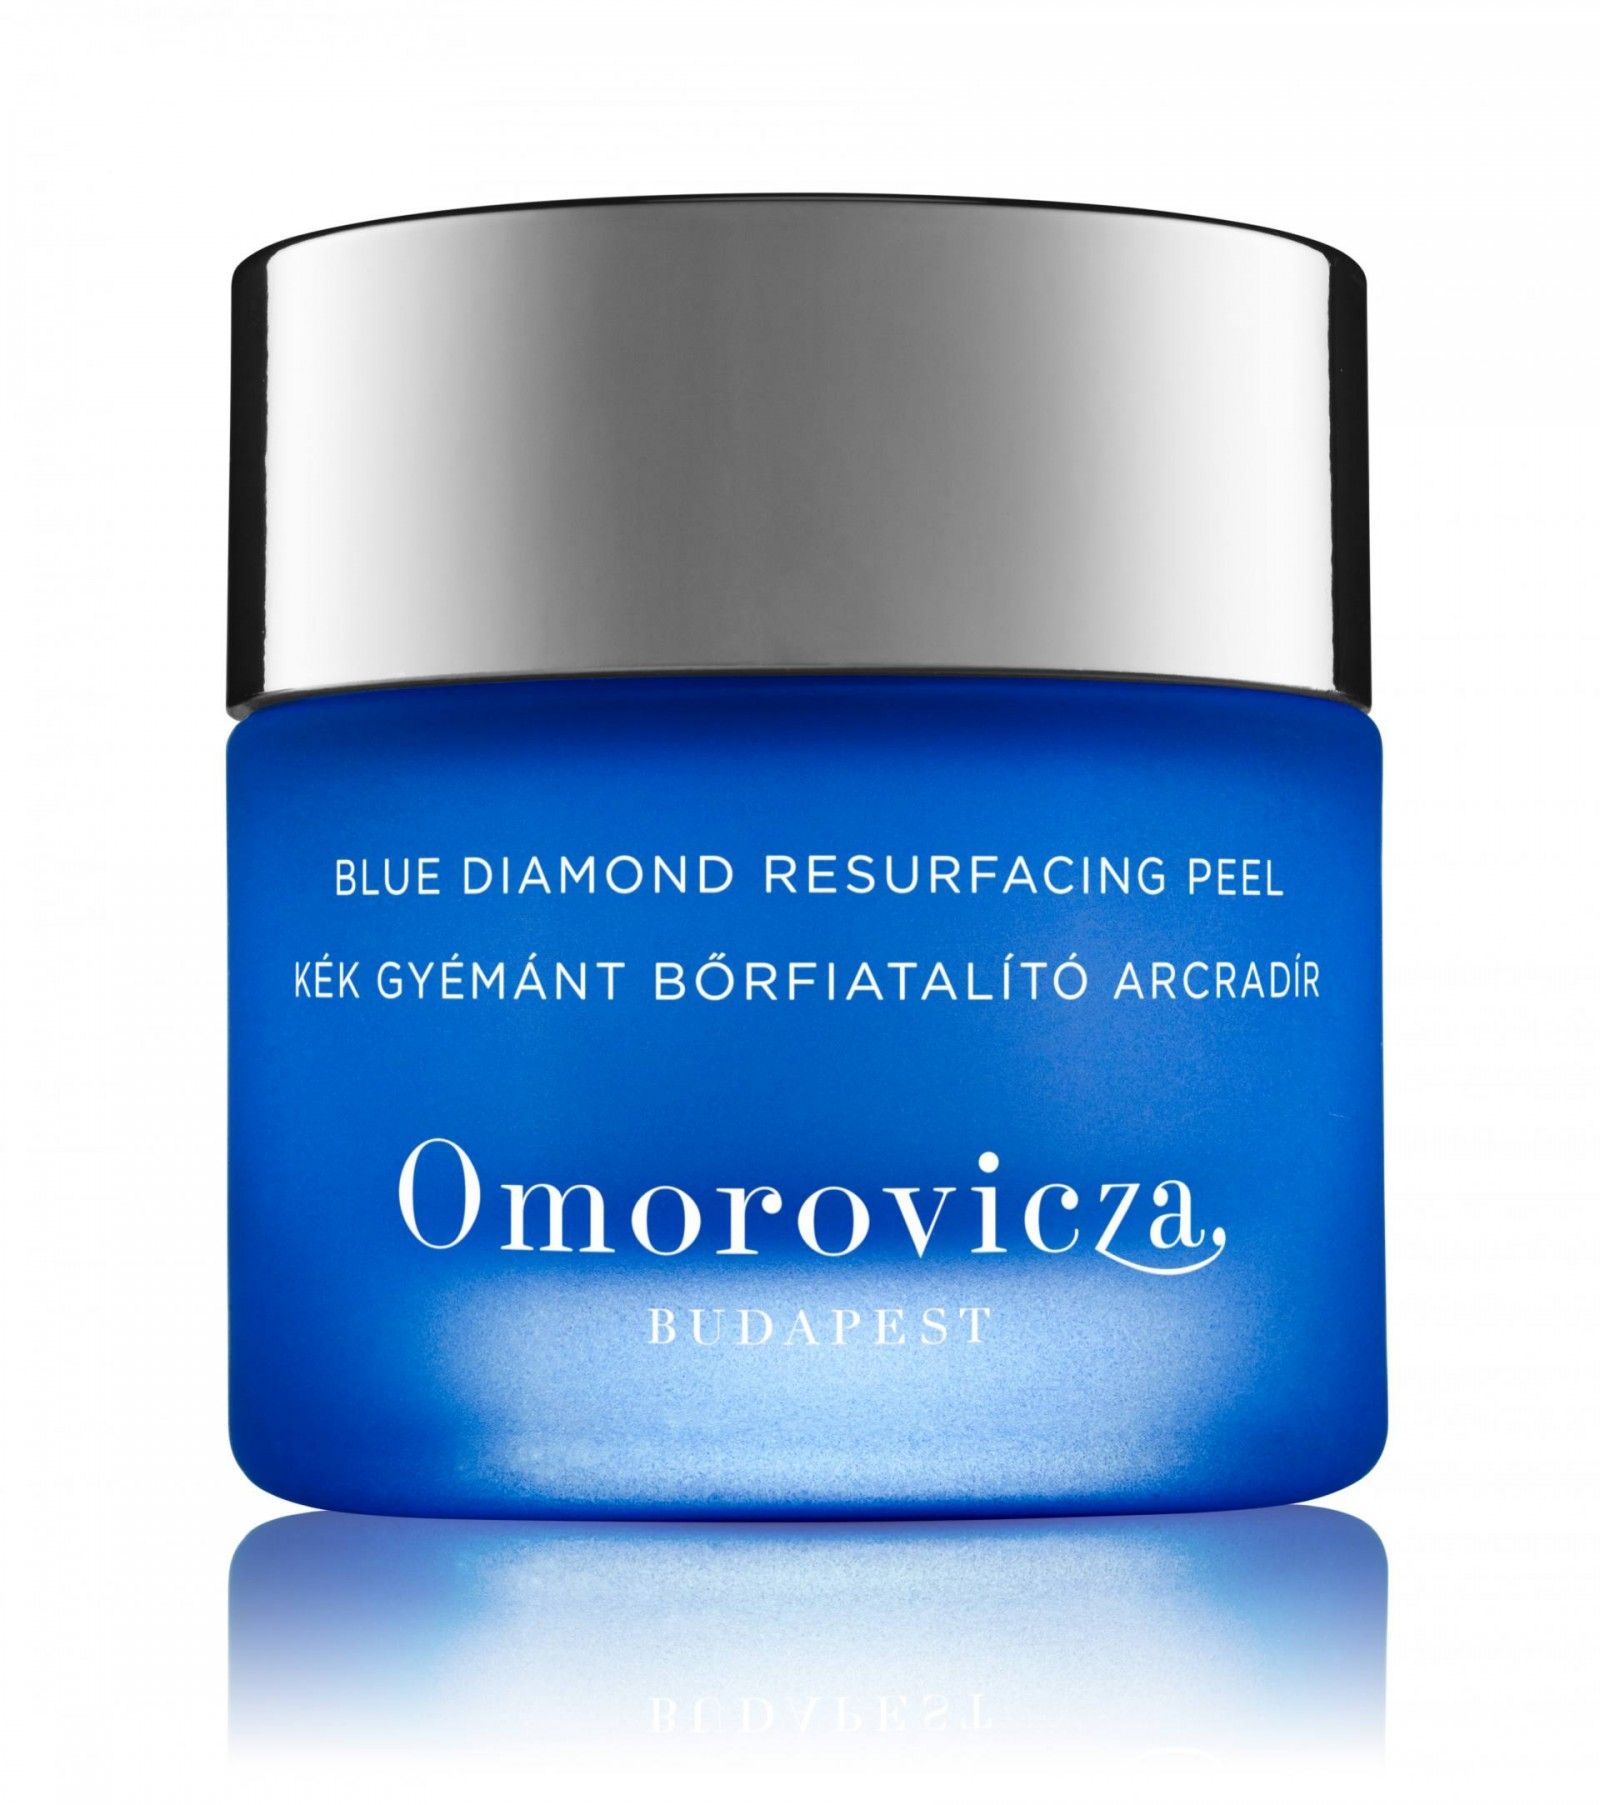 omorvicza resurfacing peel